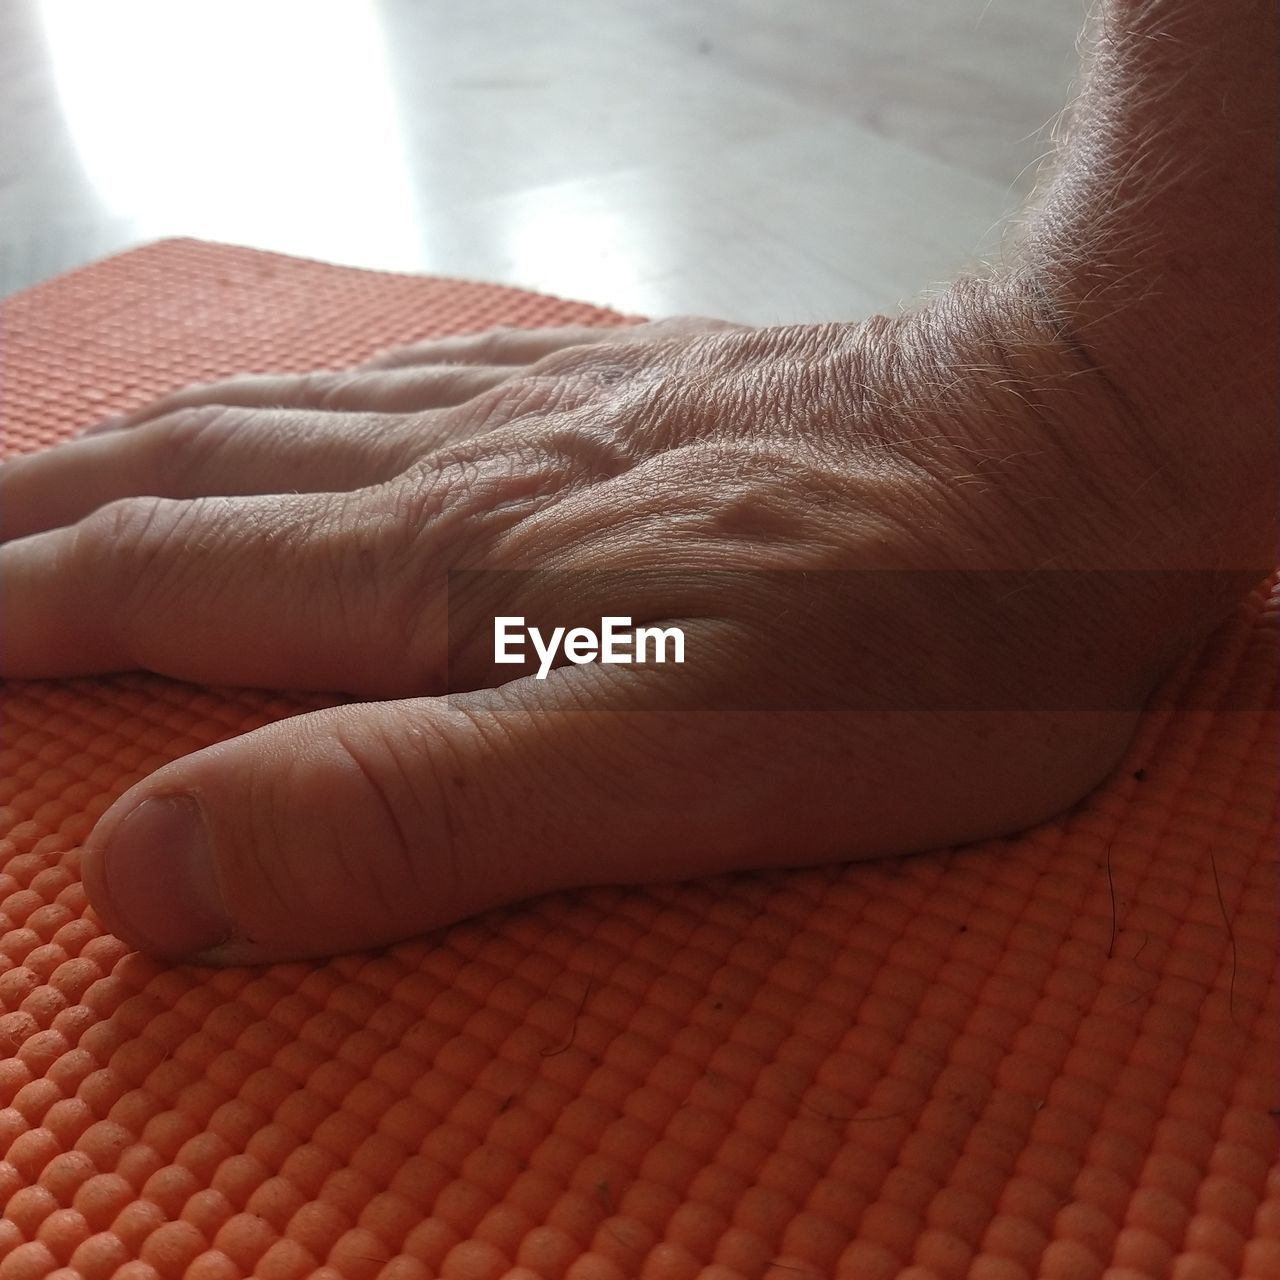 human body part, real people, body part, human hand, hand, one person, close-up, unrecognizable person, finger, human finger, lifestyles, skin, indoors, human skin, men, day, leisure activity, emotion, focus on foreground, human limb, human foot, care